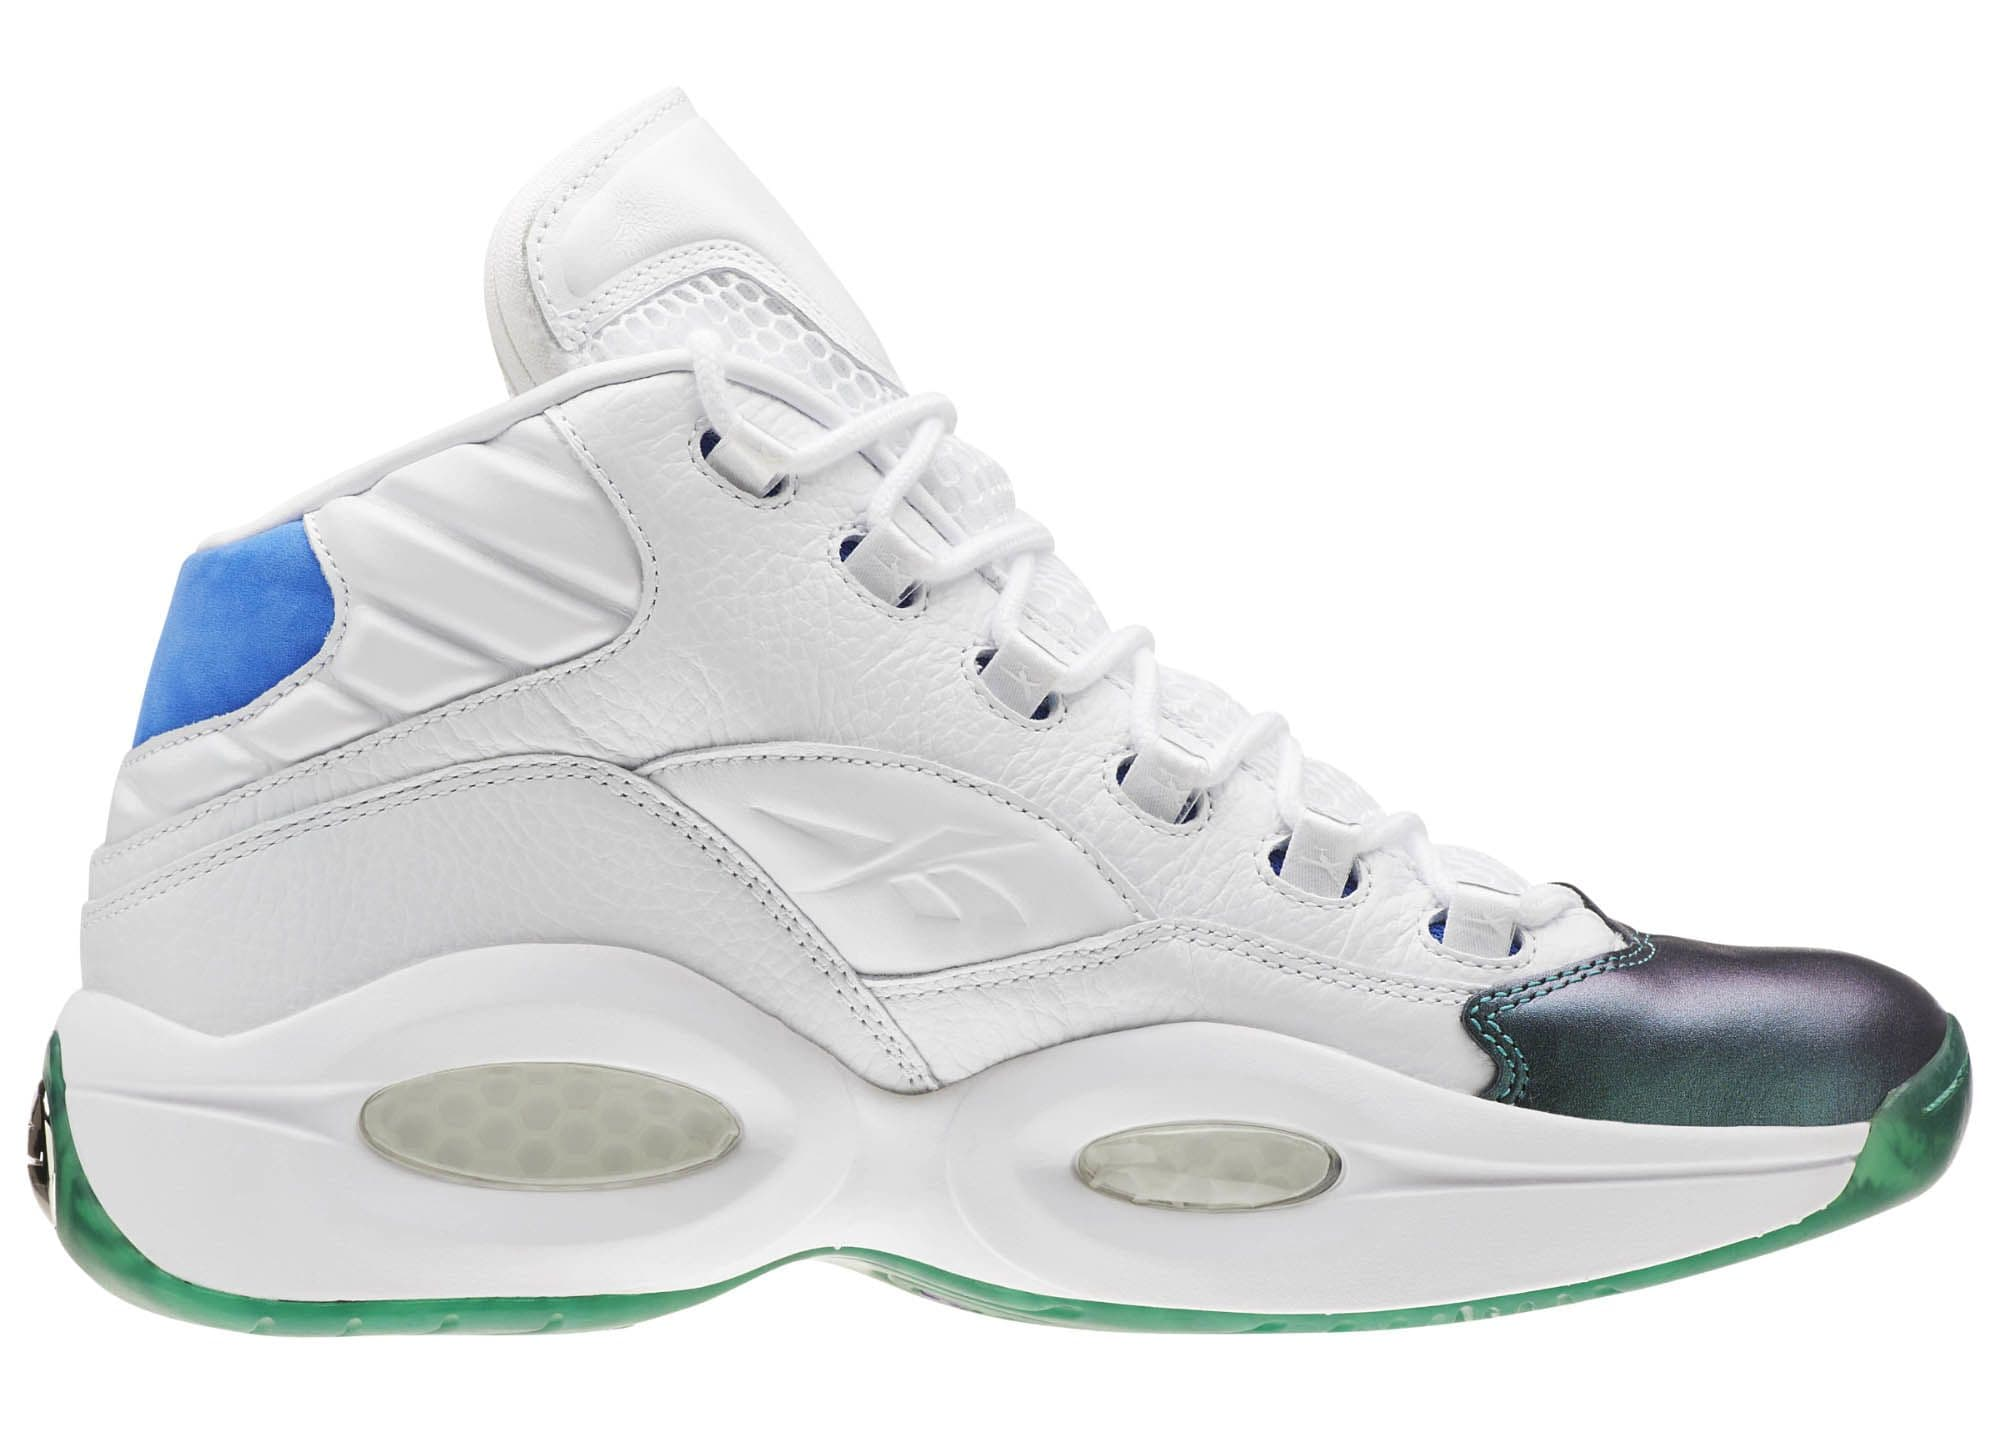 Currensy x Reebok Question Mid 'Jet Life' CN3671 (Lateral)